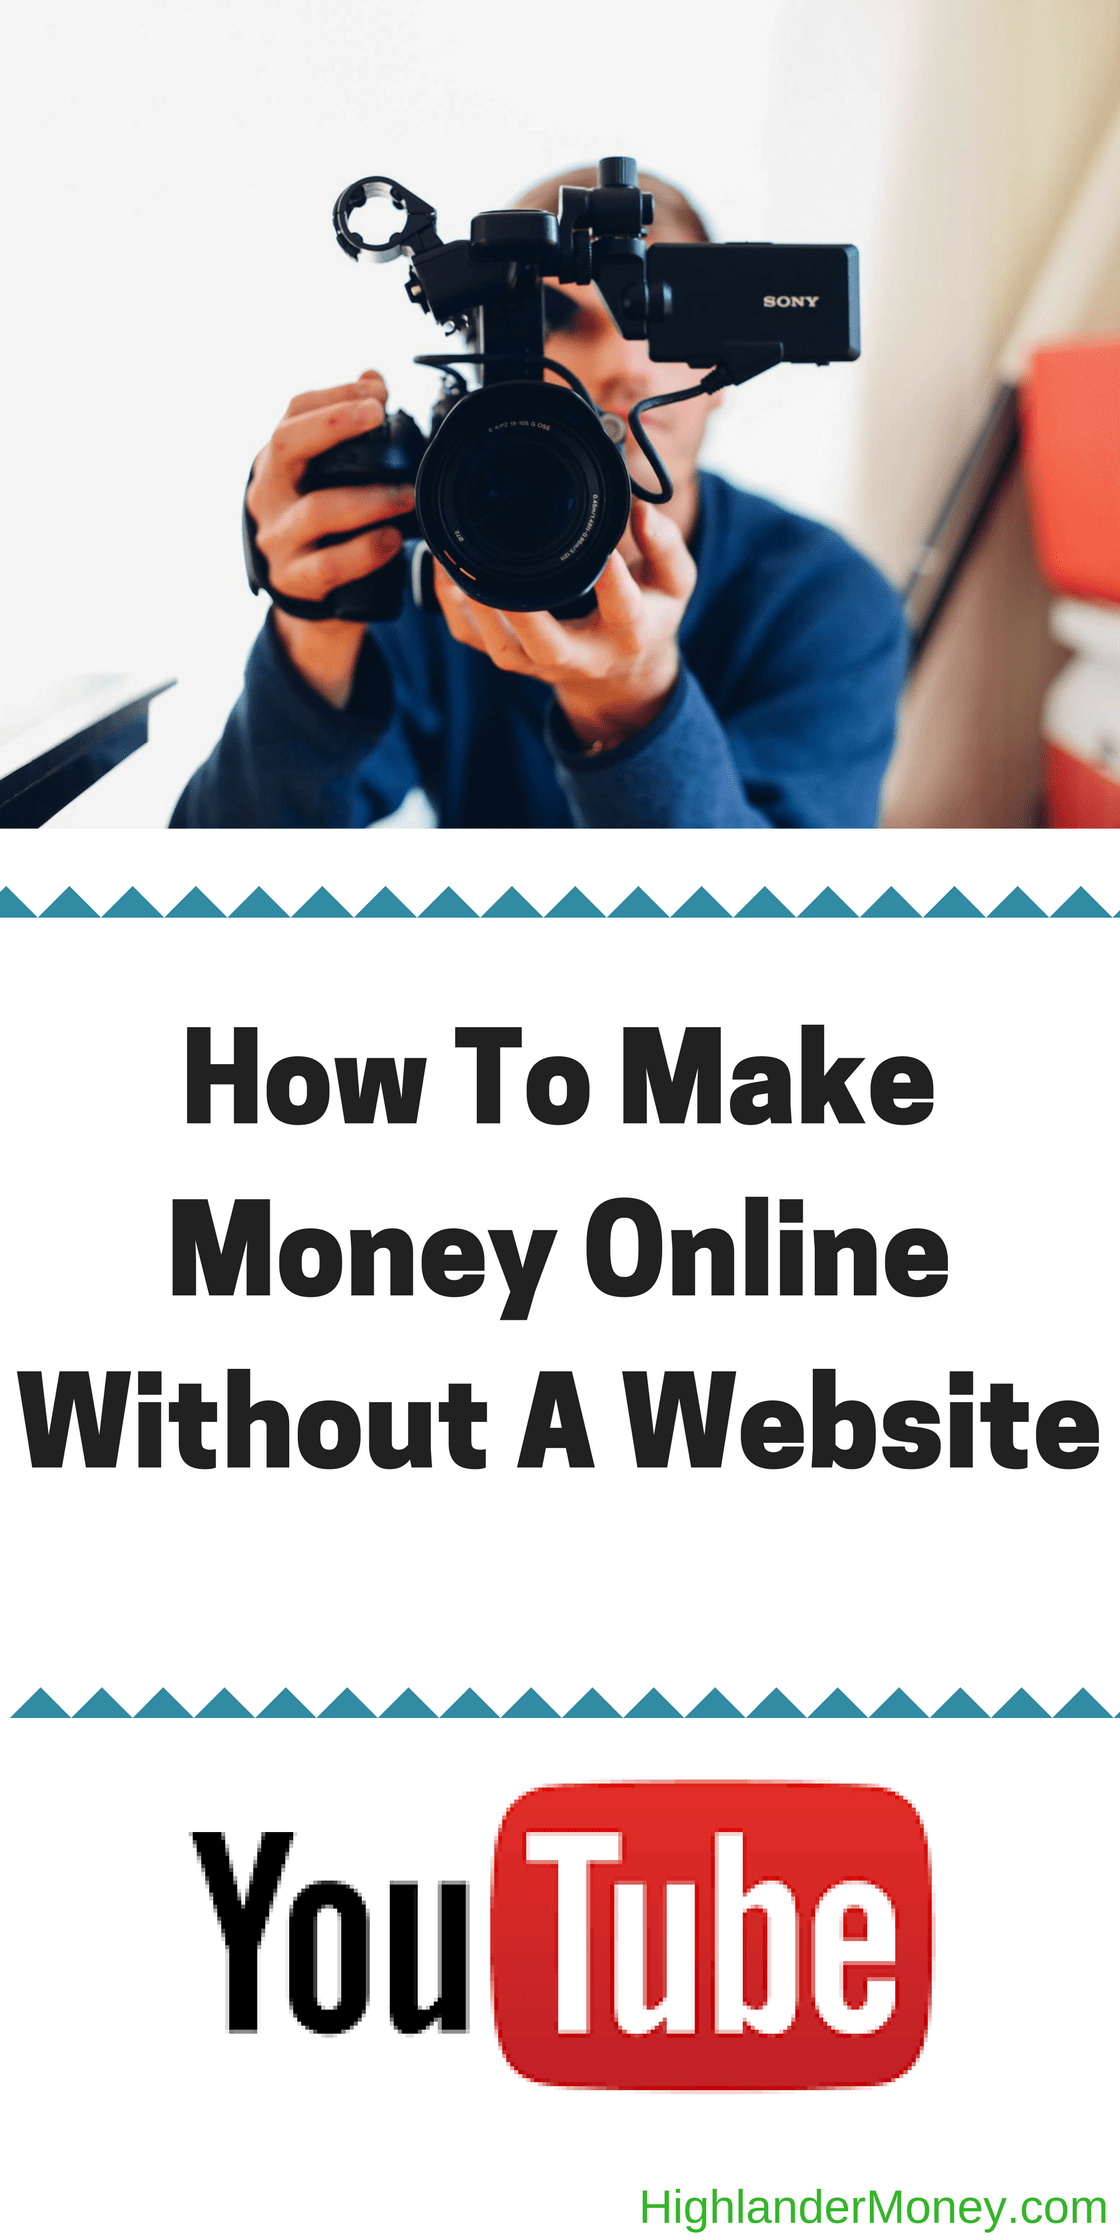 how to make money online out a website highlander money if you have any questions or suggestion i would greatly appreciate hearing them